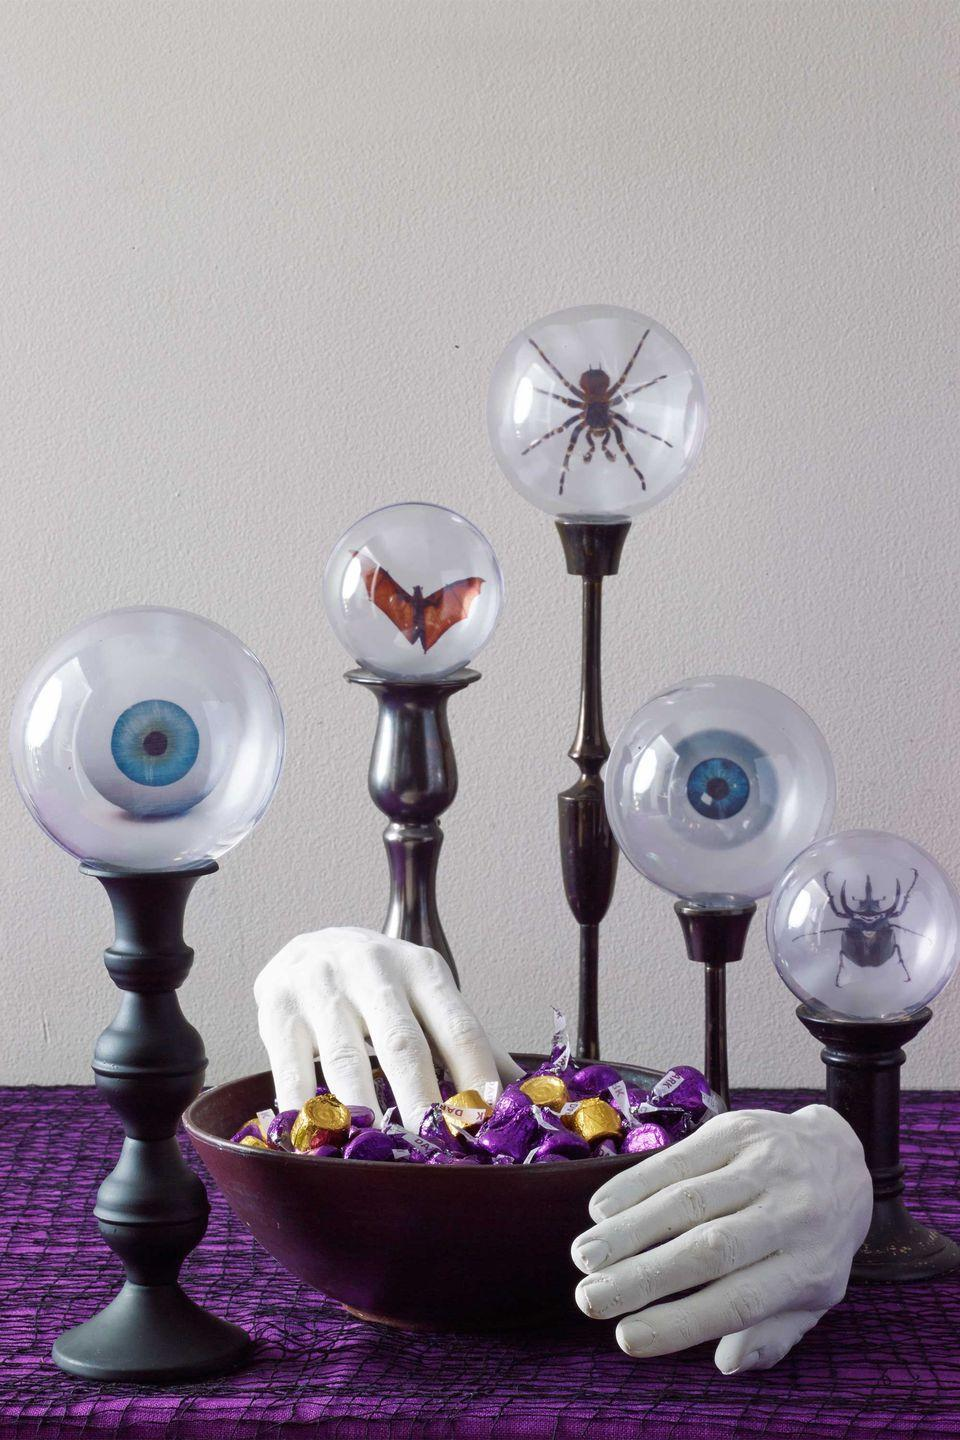 """<p>To create these floating creepy-crawlies, print free images from <em><a href=""""http://www.freepik.com/"""" rel=""""nofollow noopener"""" target=""""_blank"""" data-ylk=""""slk:freepik.com"""" class=""""link rapid-noclick-resp"""">freepik.com</a> </em>onto paper vellum. Separate the halves of plastic ornaments, then lay one half flat-side down over the image, trace and cut out. Place the image cutout between the ornament halves, snap together and balance upside down on candlesticks. These grabby fingers look lifelike because they're made using molds of your very own hands. </p><p><strong>What You'll Need</strong>: <a href=""""https://www.amazon.com/Seekingtag-Clear-Plastic-Fillable-Ornaments/dp/B017VXXXHU/ref=sr_1_3?dchild=1&keywords=plastic+snappable+ornaments&qid=1595000703&sr=8-3&tag=syn-yahoo-20&ascsubtag=%5Bartid%7C10070.g.1279%5Bsrc%7Cyahoo-us"""" rel=""""nofollow noopener"""" target=""""_blank"""" data-ylk=""""slk:Plastic ornaments"""" class=""""link rapid-noclick-resp"""">Plastic ornaments </a>($10, Amazon); <a href=""""https://www.amazon.com/Perfect-Craft-Gestures-Molding-Casting/dp/B004PJAOXA/ref=sr_1_14?dchild=1&keywords=hand+mold+kit&qid=1595000746&sr=8-14&tag=syn-yahoo-20&ascsubtag=%5Bartid%7C10070.g.1279%5Bsrc%7Cyahoo-us"""" rel=""""nofollow noopener"""" target=""""_blank"""" data-ylk=""""slk:cast molding kit"""" class=""""link rapid-noclick-resp"""">cast molding kit </a>($30, Amazon); <a href=""""https://www.amazon.com/SUNFACE-Portavelas-7-9-3-1-11-8/dp/B07N657QYB/ref=sr_1_5?dchild=1&keywords=black+candle+holders&qid=1595000819&sr=8-5&tag=syn-yahoo-20&ascsubtag=%5Bartid%7C10070.g.1279%5Bsrc%7Cyahoo-us"""" rel=""""nofollow noopener"""" target=""""_blank"""" data-ylk=""""slk:candle sticks"""" class=""""link rapid-noclick-resp"""">candle sticks</a> ($29, Amazon)</p>"""